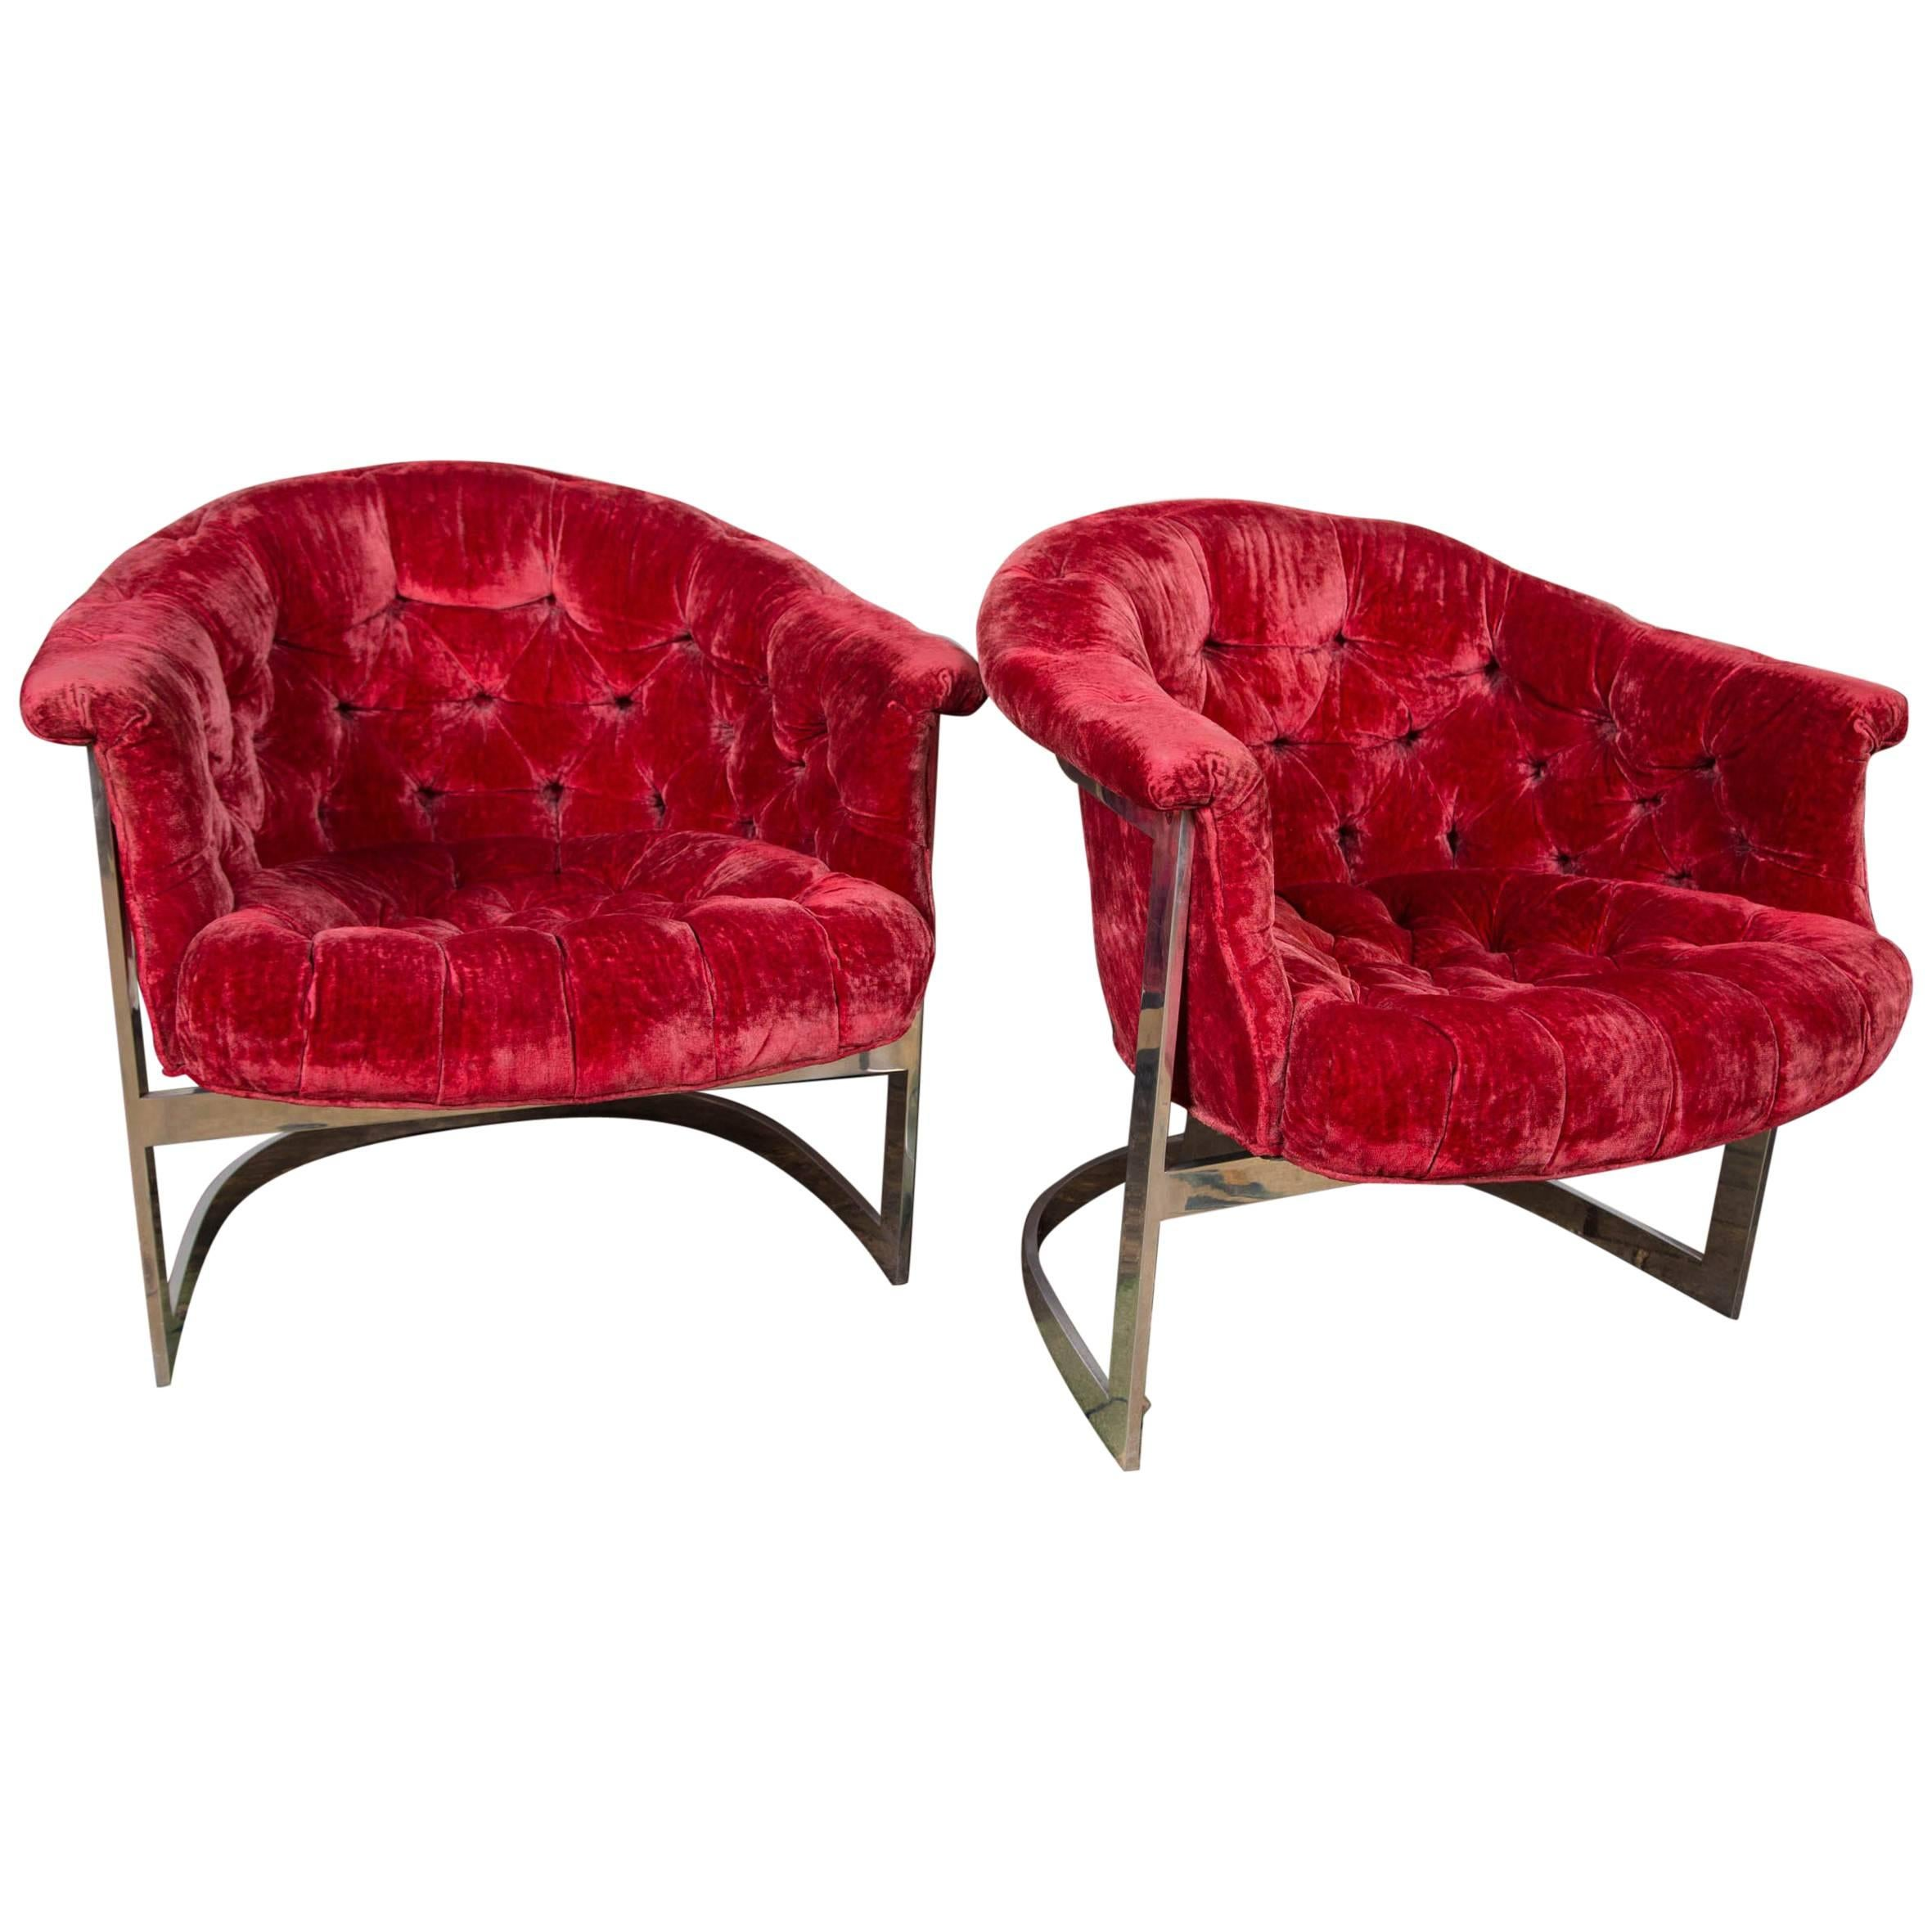 Pair of John Stuart Tufted and Steel Lounge Chairs